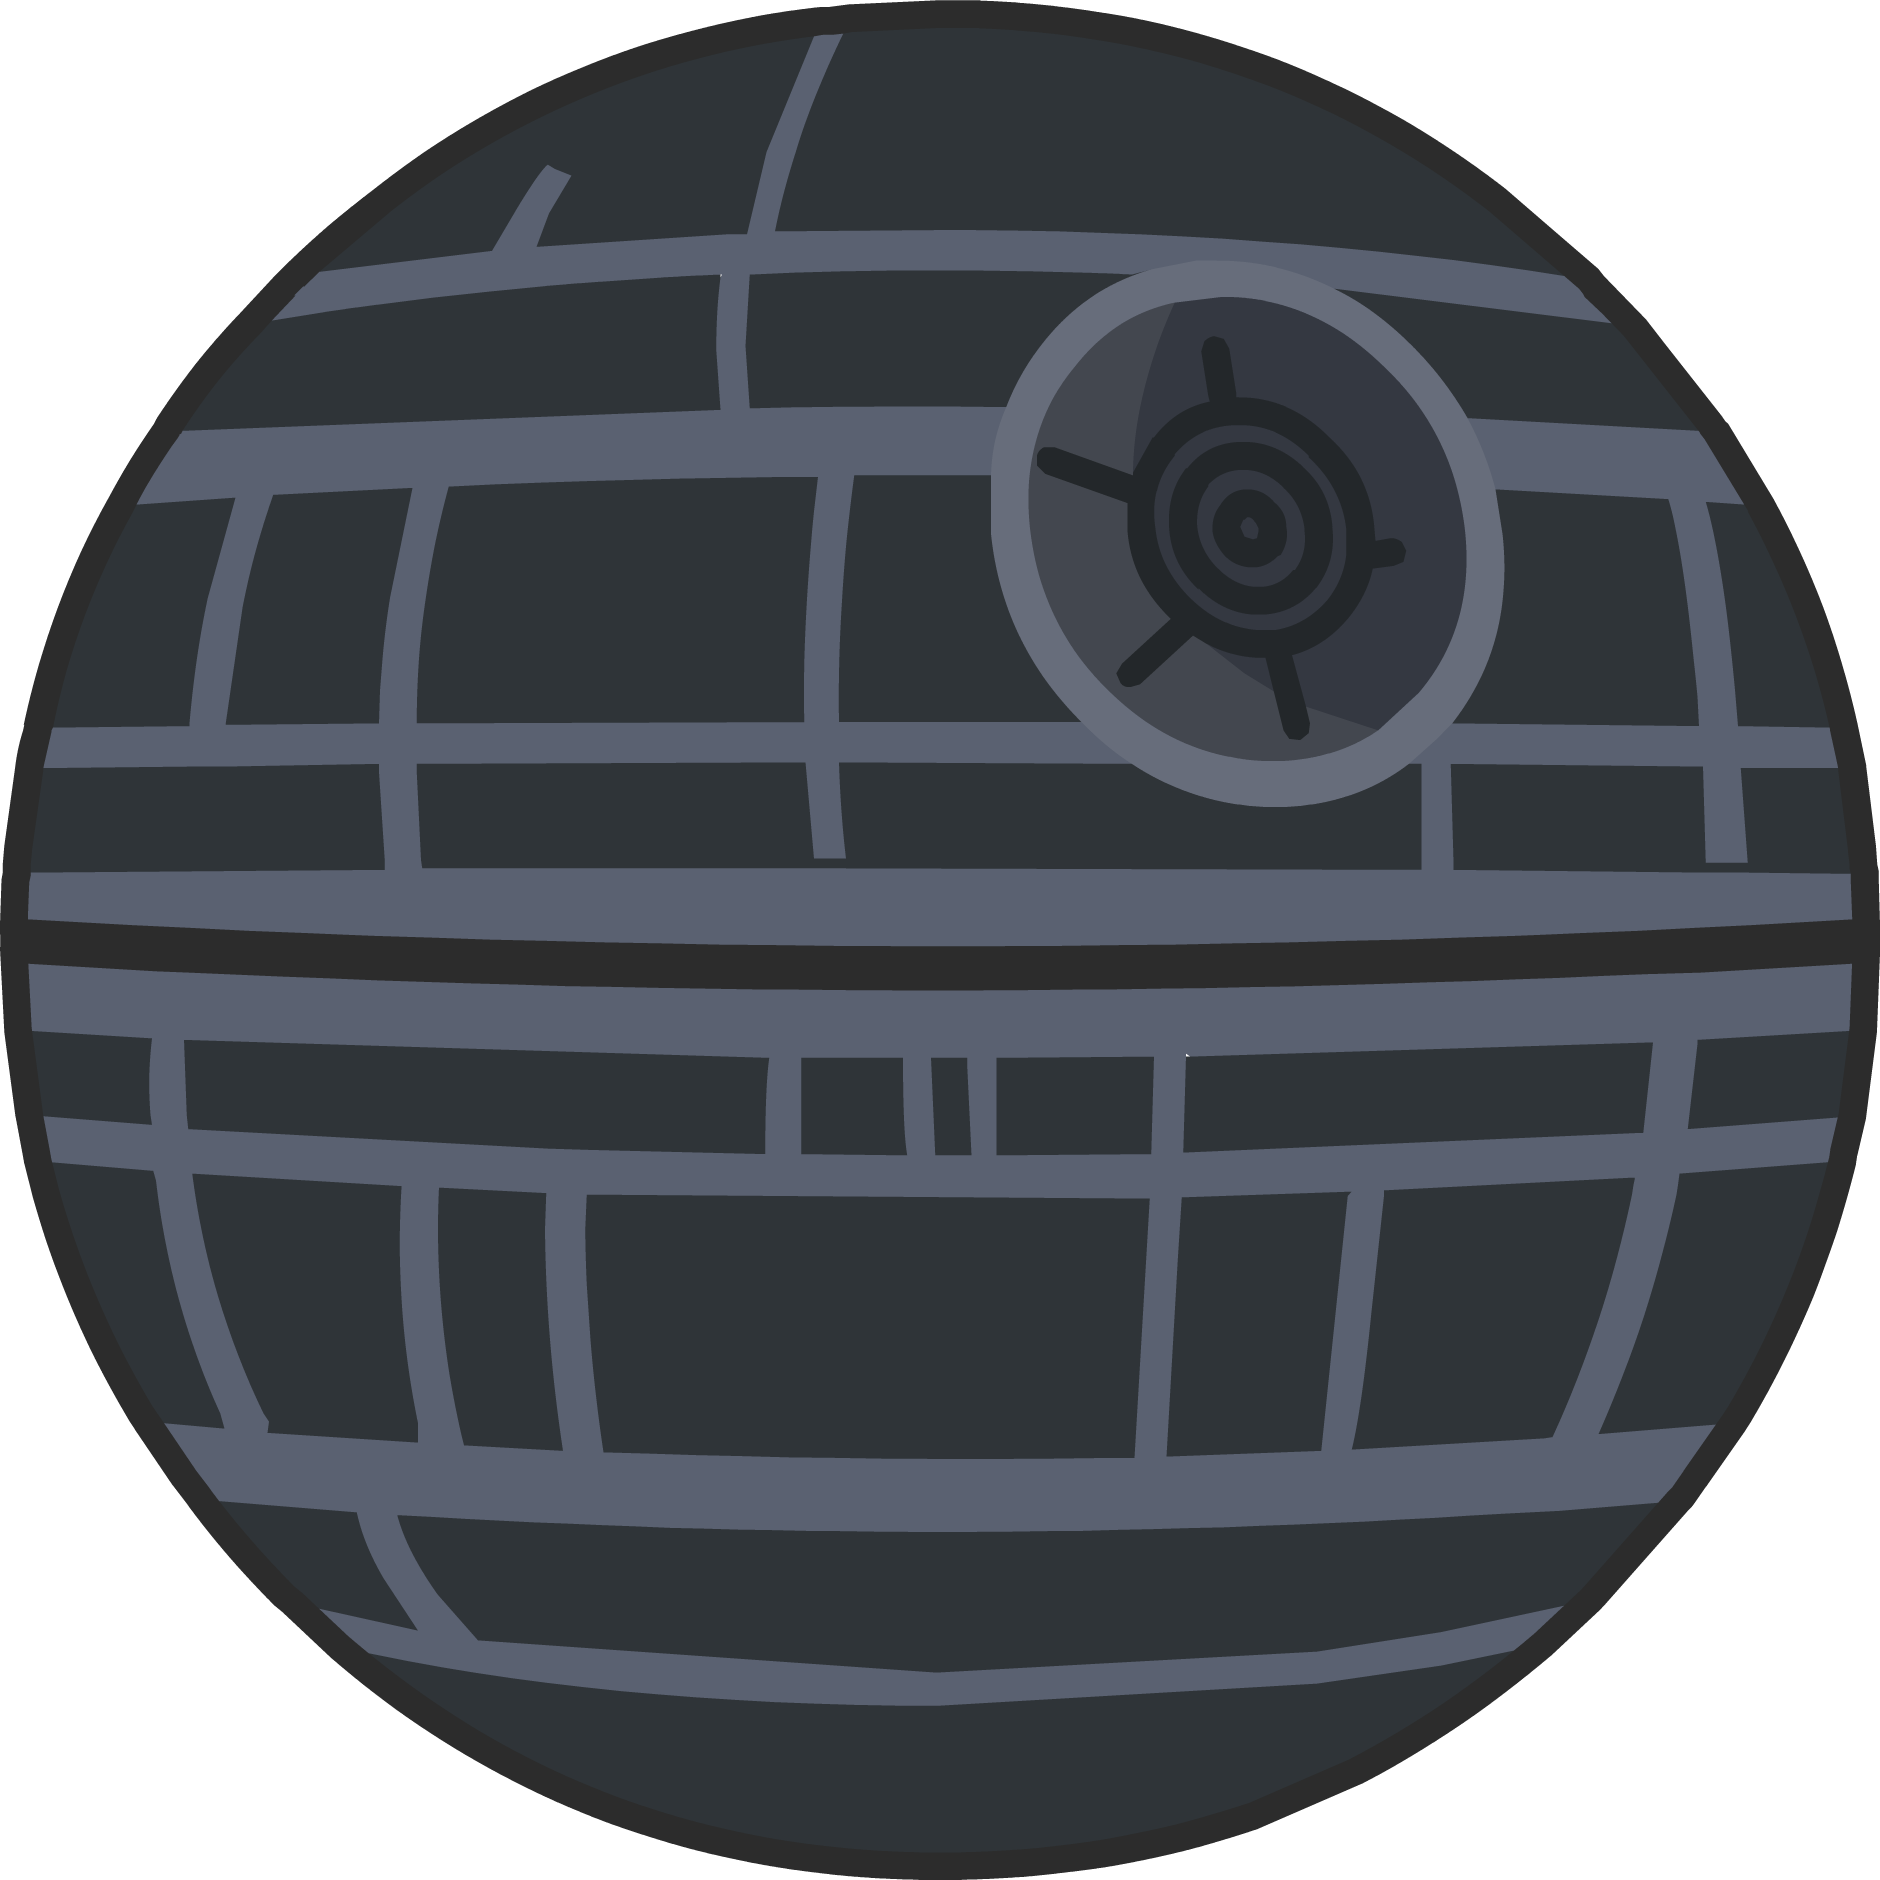 Death star clipart black and white clipart library library Death Star | Club Penguin Wiki | FANDOM powered by Wikia clipart library library